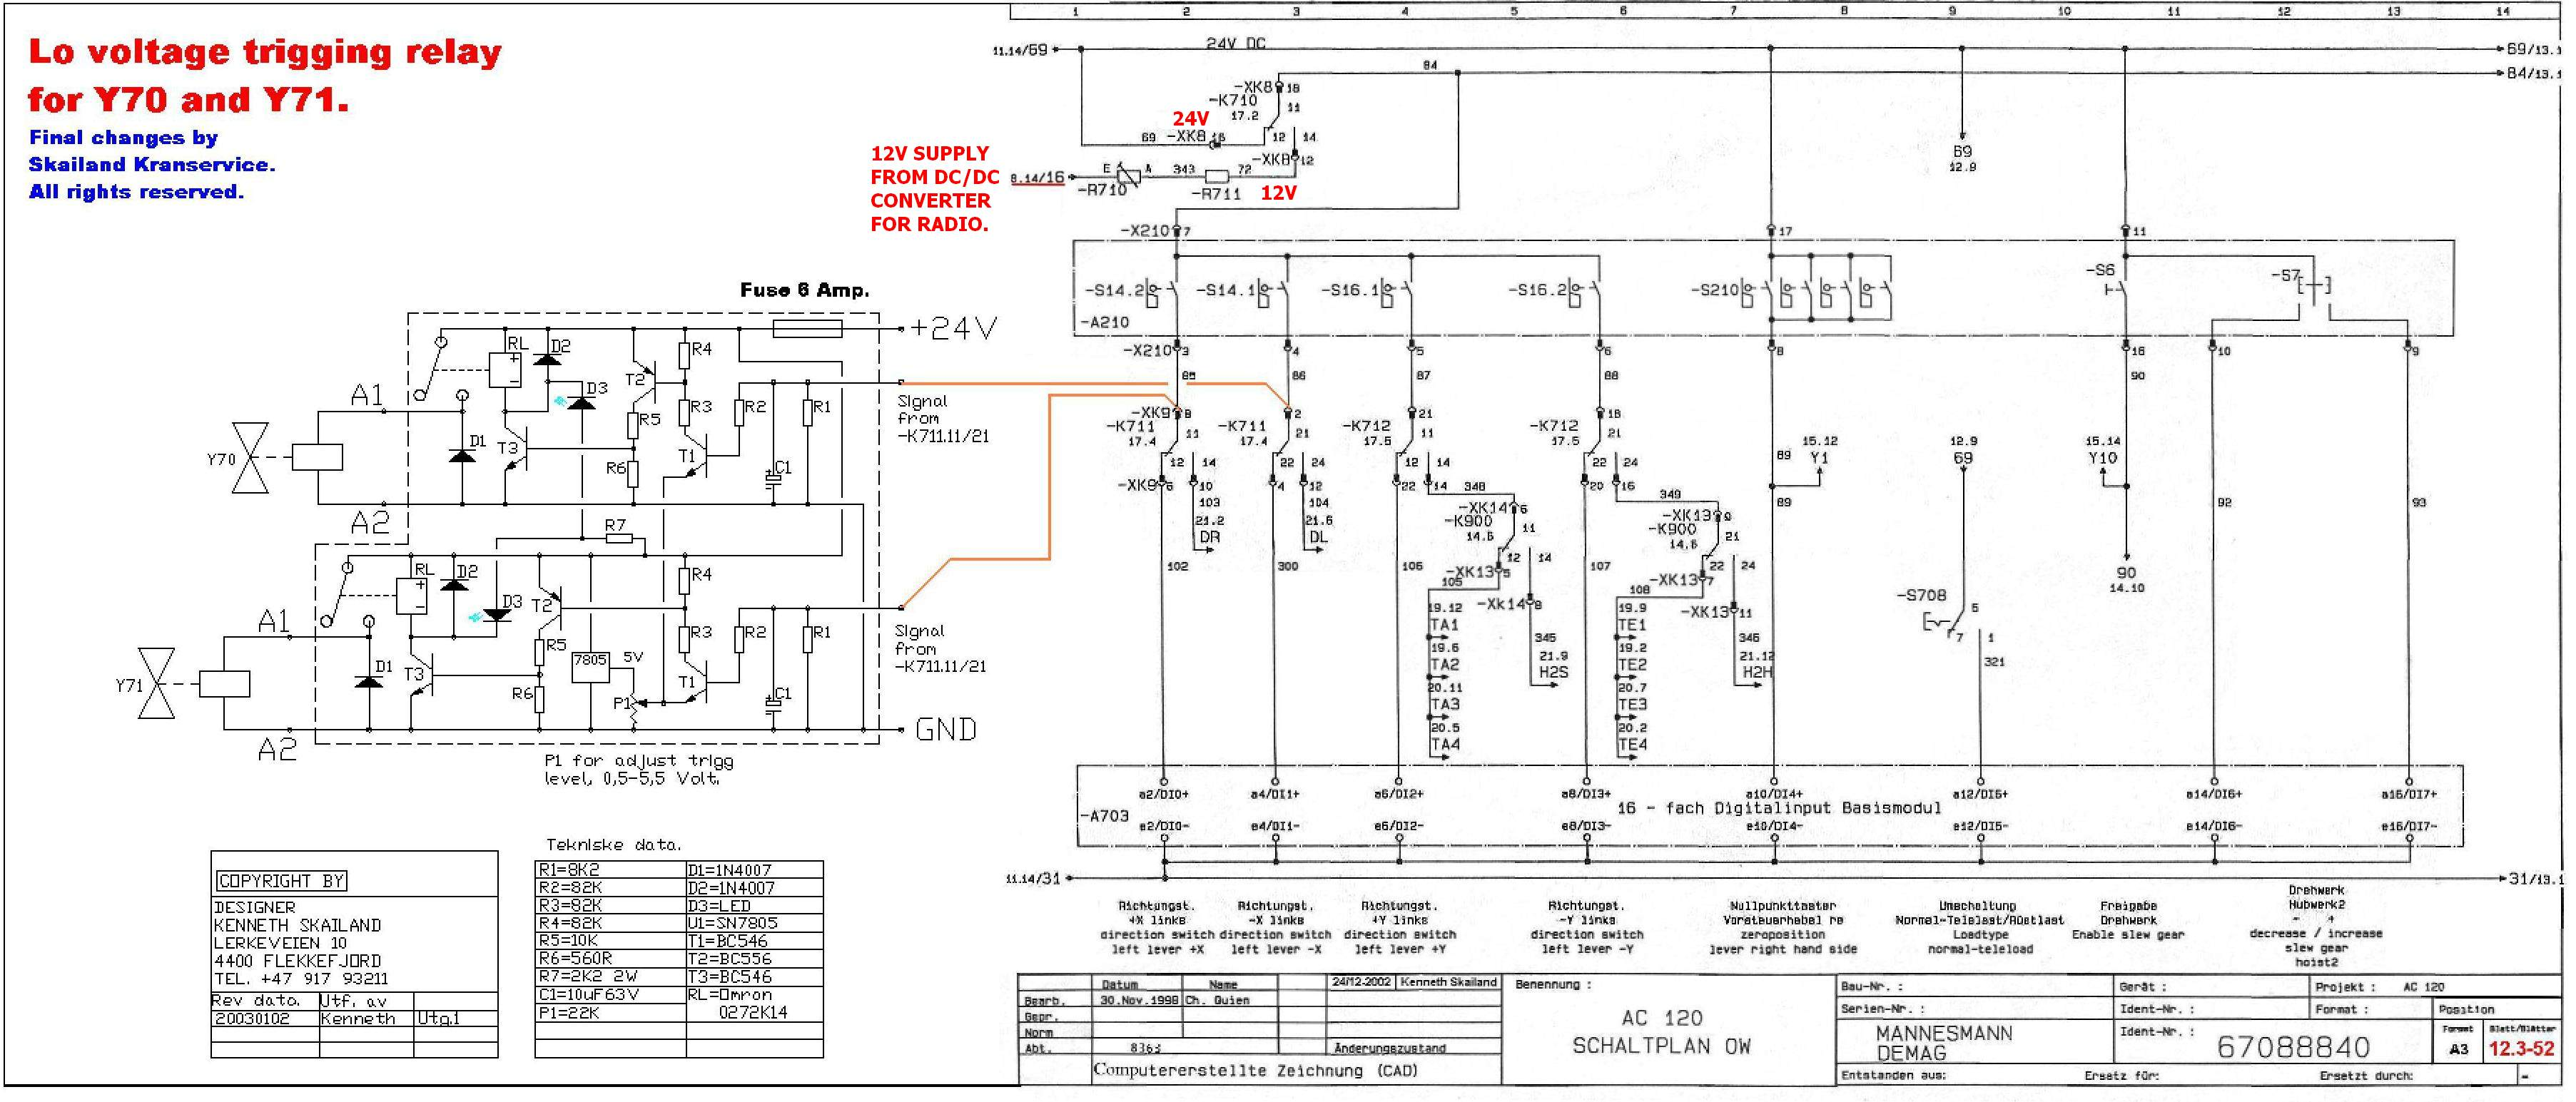 B12.3 worldwide repair of mobile cranes demag, liebherr, faun demag hoist wiring diagram at mifinder.co